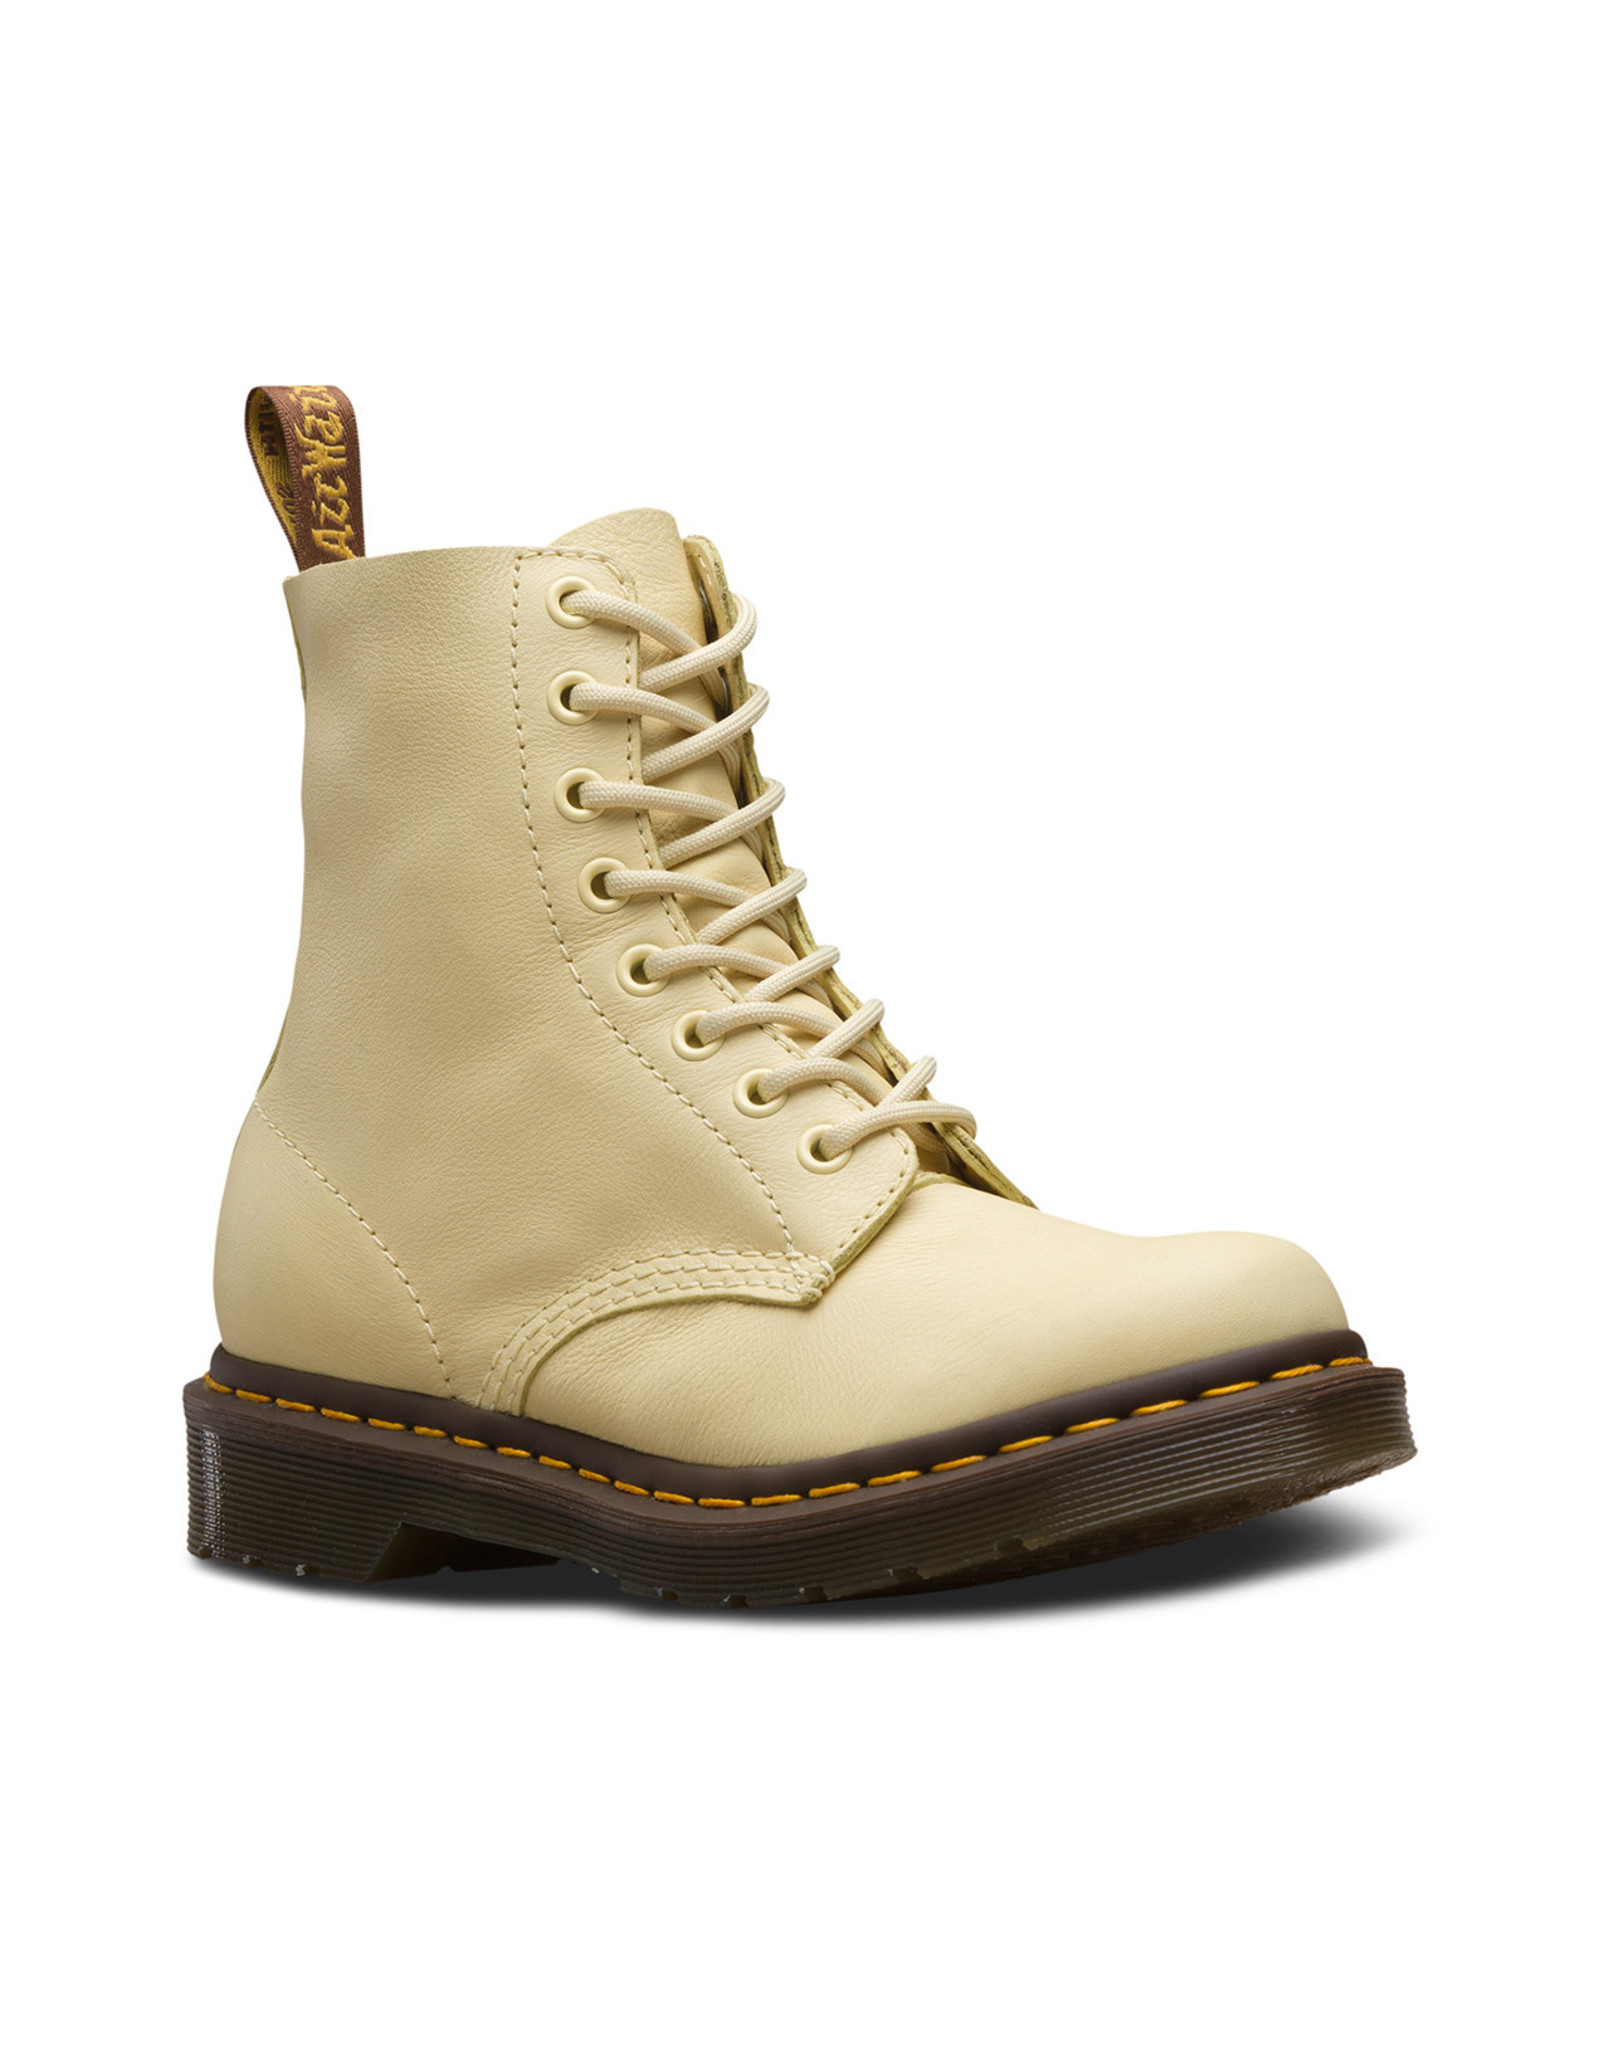 DR. MARTENS 1460 PASCAL VIRGINIA PASTEL YELLOW 815PY-R24482757